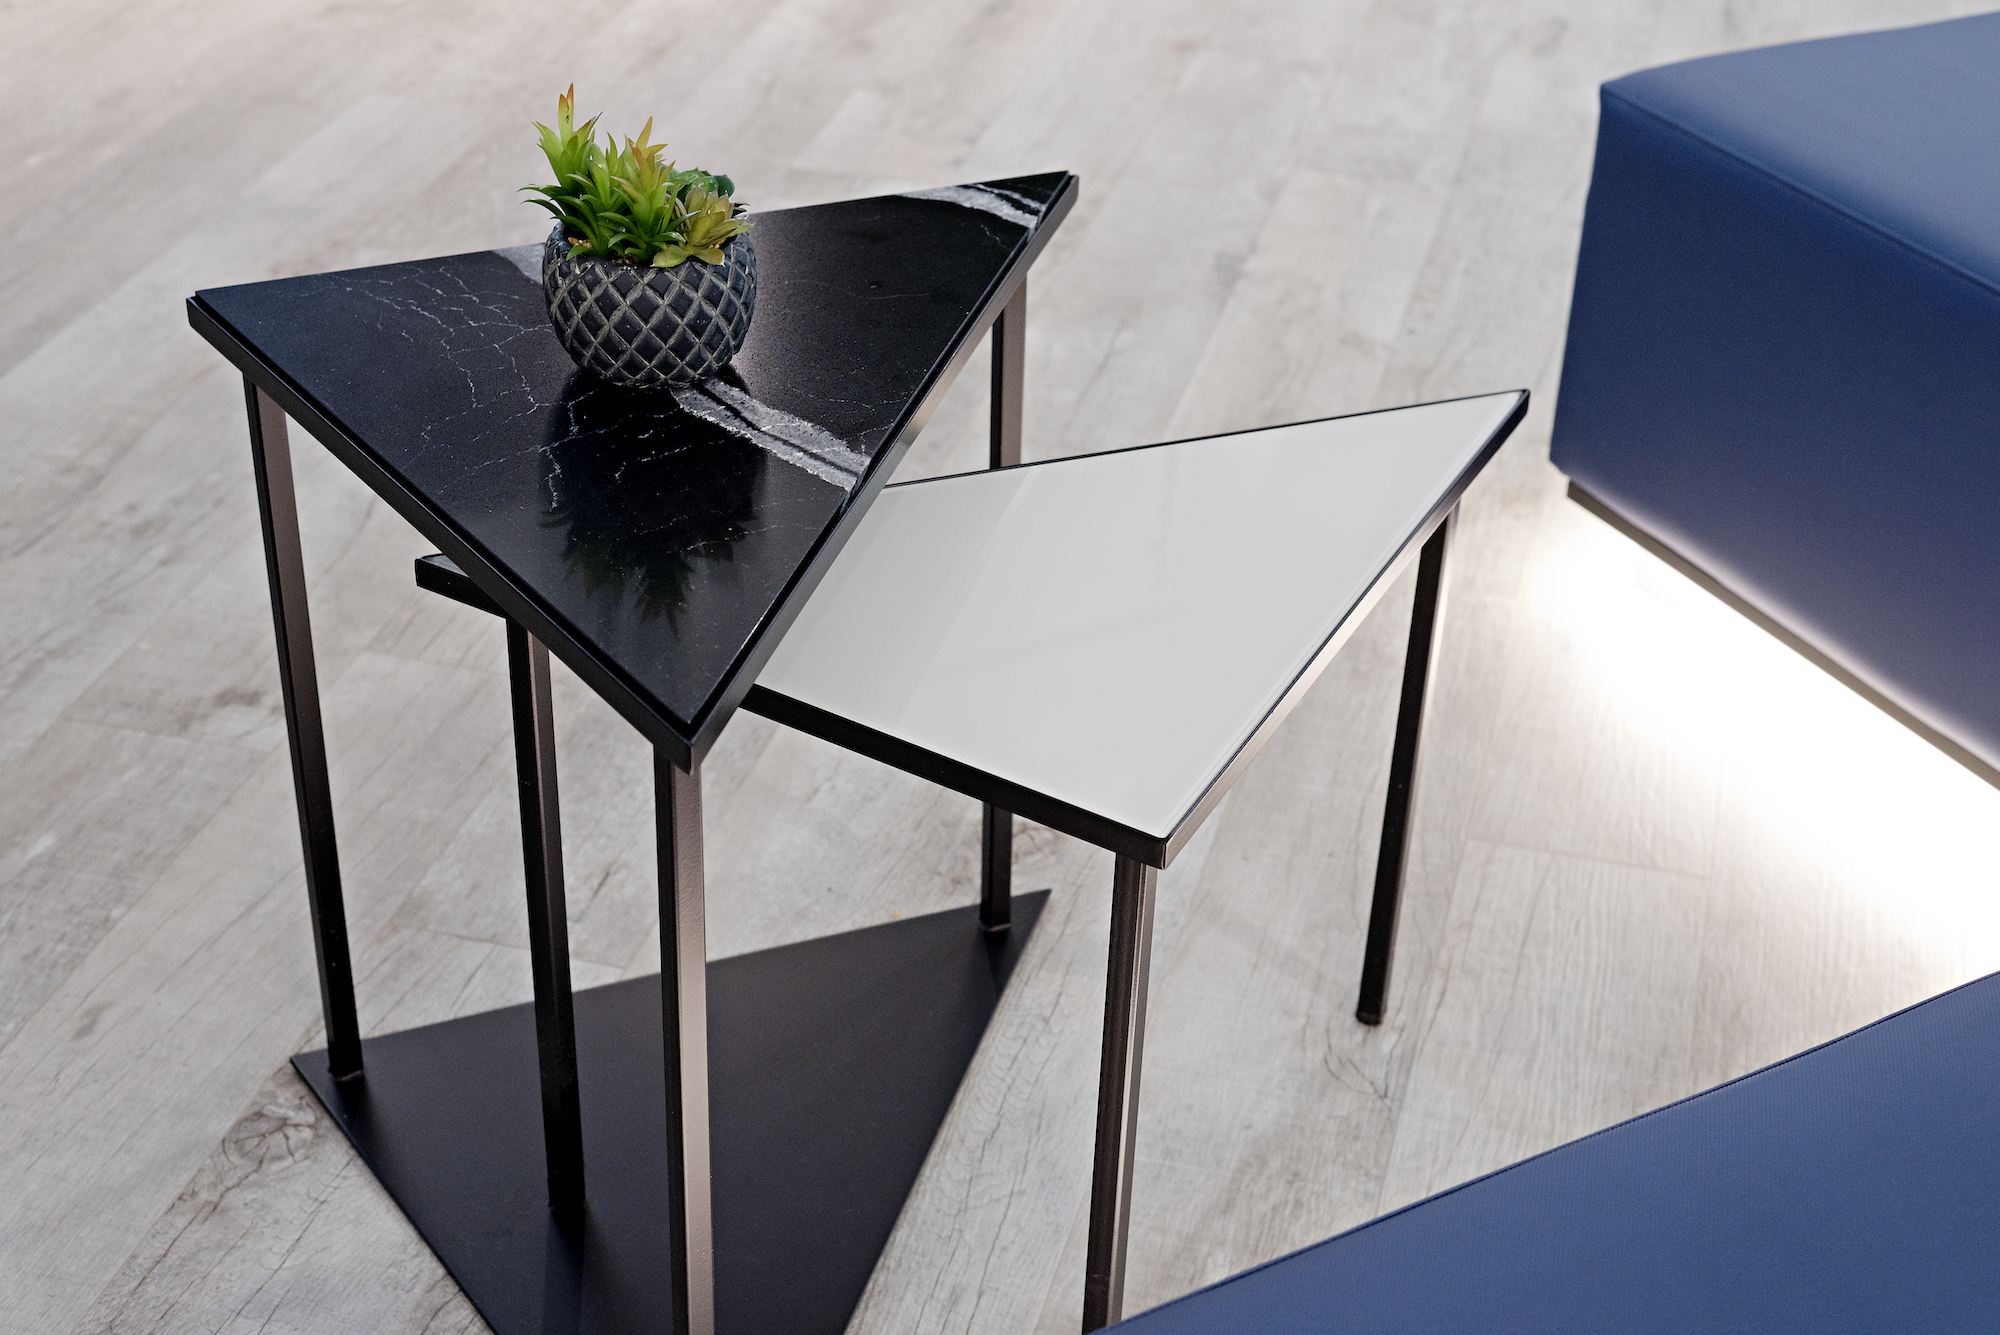 3 pizzale design interior design commercial triangle table quartz metal nesting tables succulent blue bench led lighting black accent custom grey laminate flooring.jpg